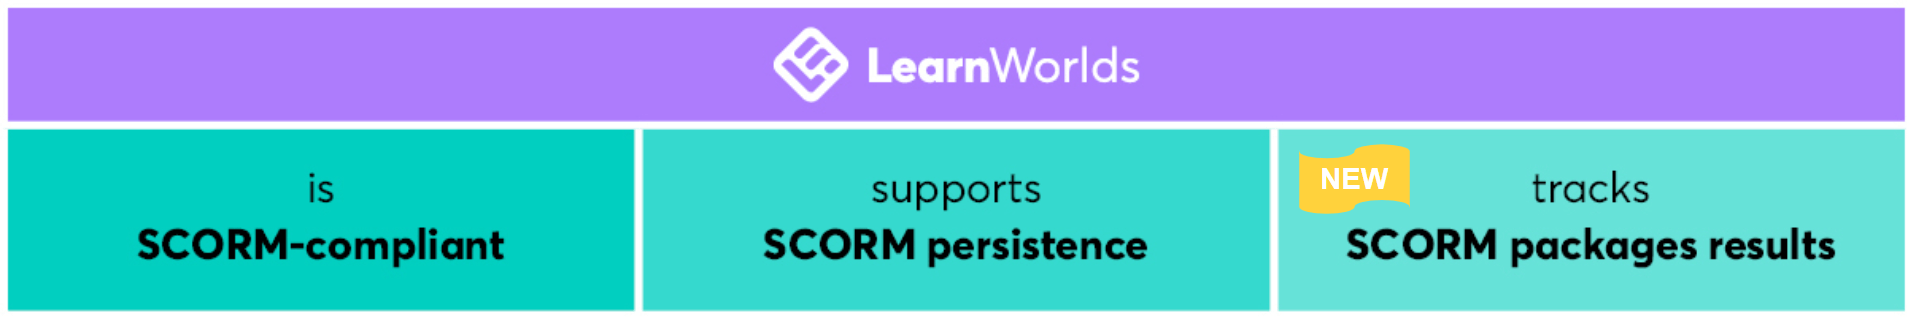 LearnWorlds is scorm-compliant, scorm persistence and tracks scores.